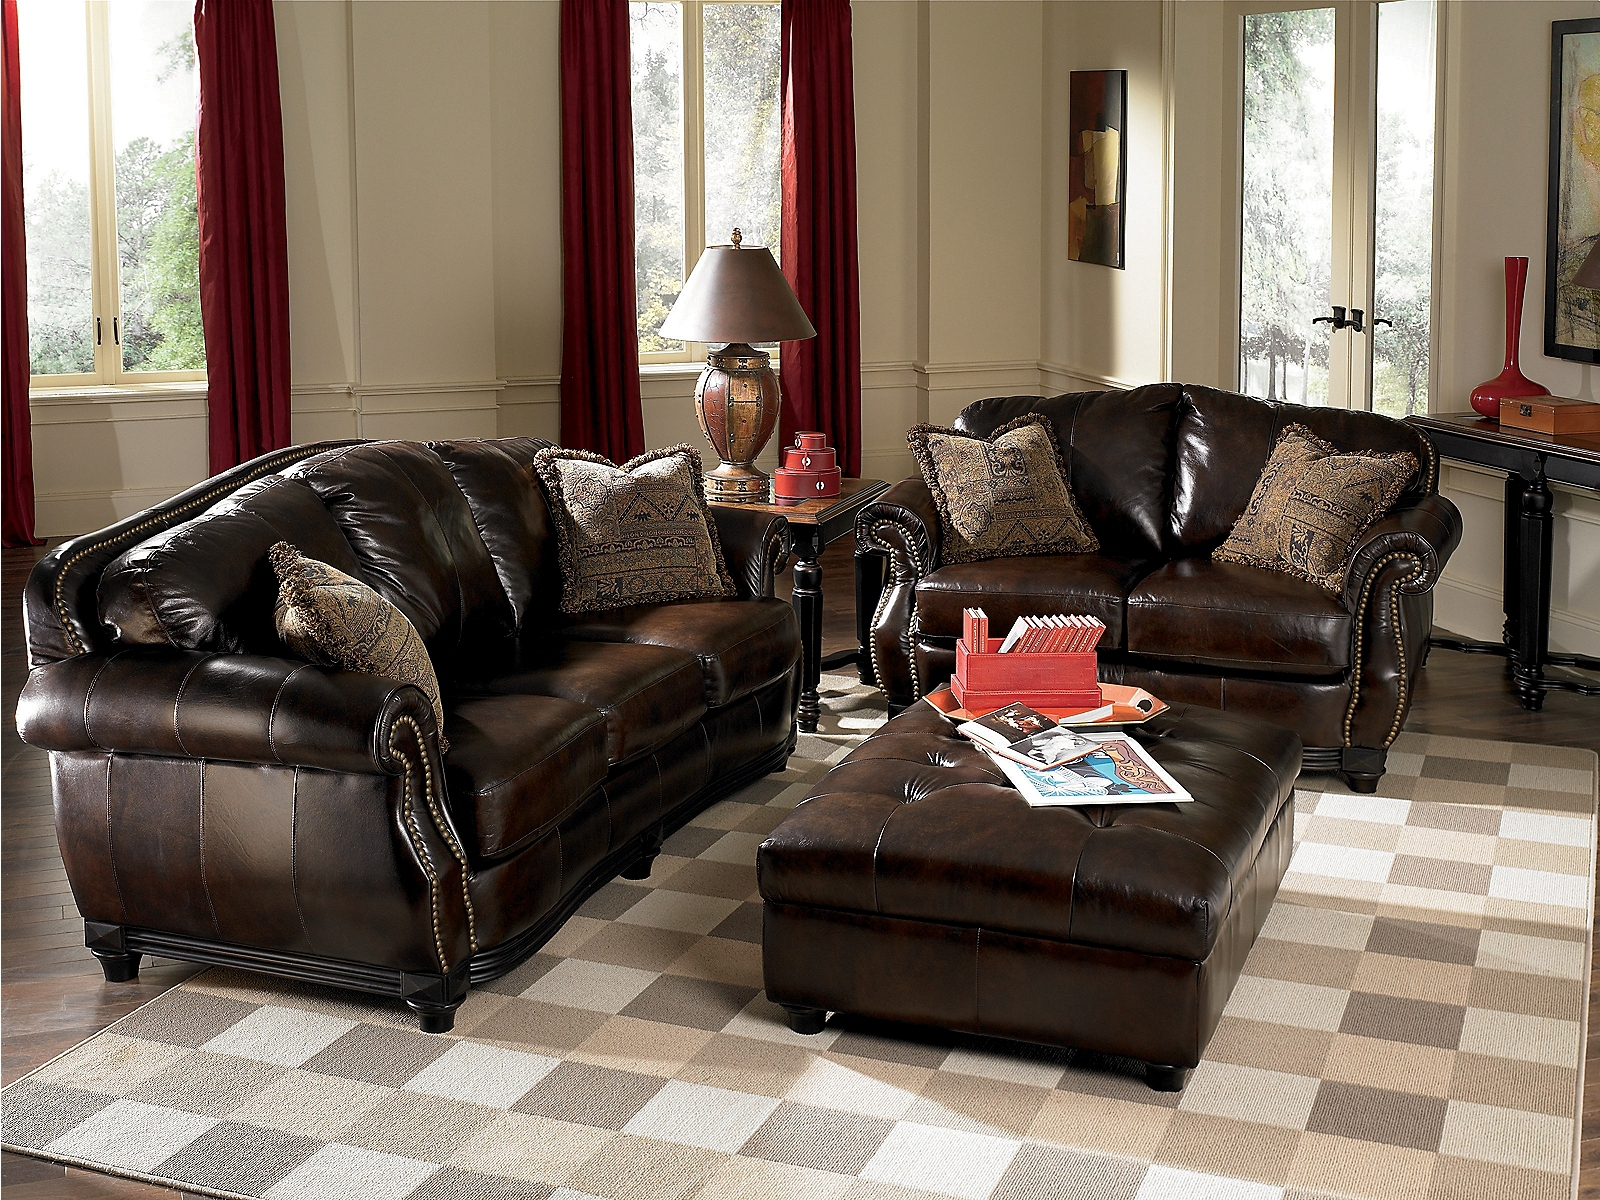 Preferred The Brick Leather Sofas Regarding Brick Furniture Sofas (View 14 of 15)